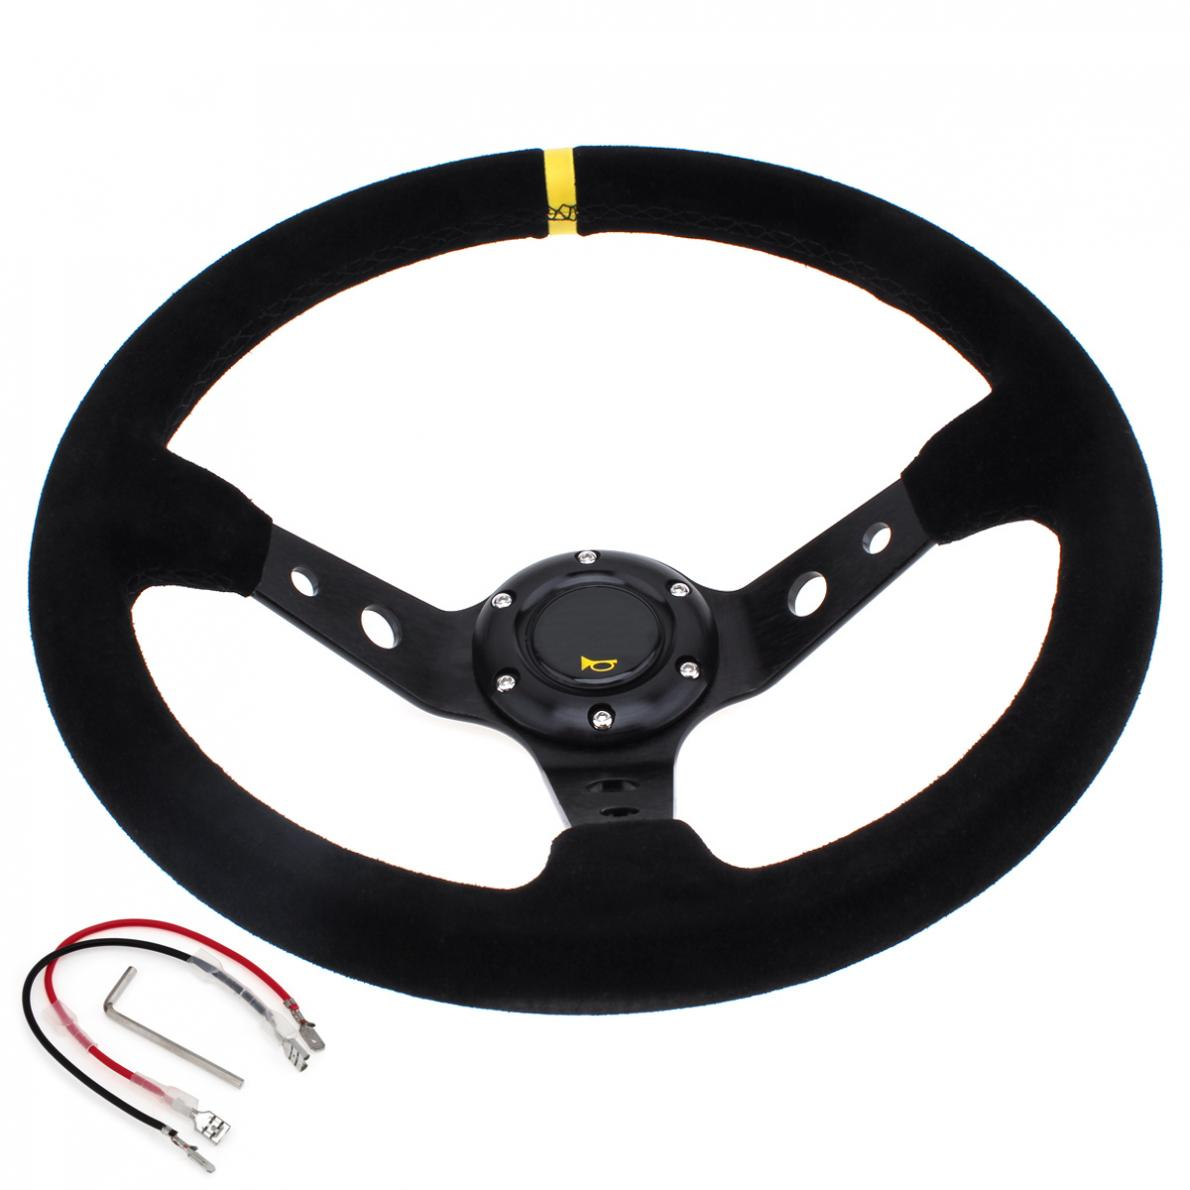 <font><b>14</b></font> Inch Universal Racing <font><b>Car</b></font> Steering <font><b>Wheel</b></font> 350mm Deep Dish Auto Steering <font><b>Wheel</b></font> with Suede Leather <font><b>Cover</b></font> image